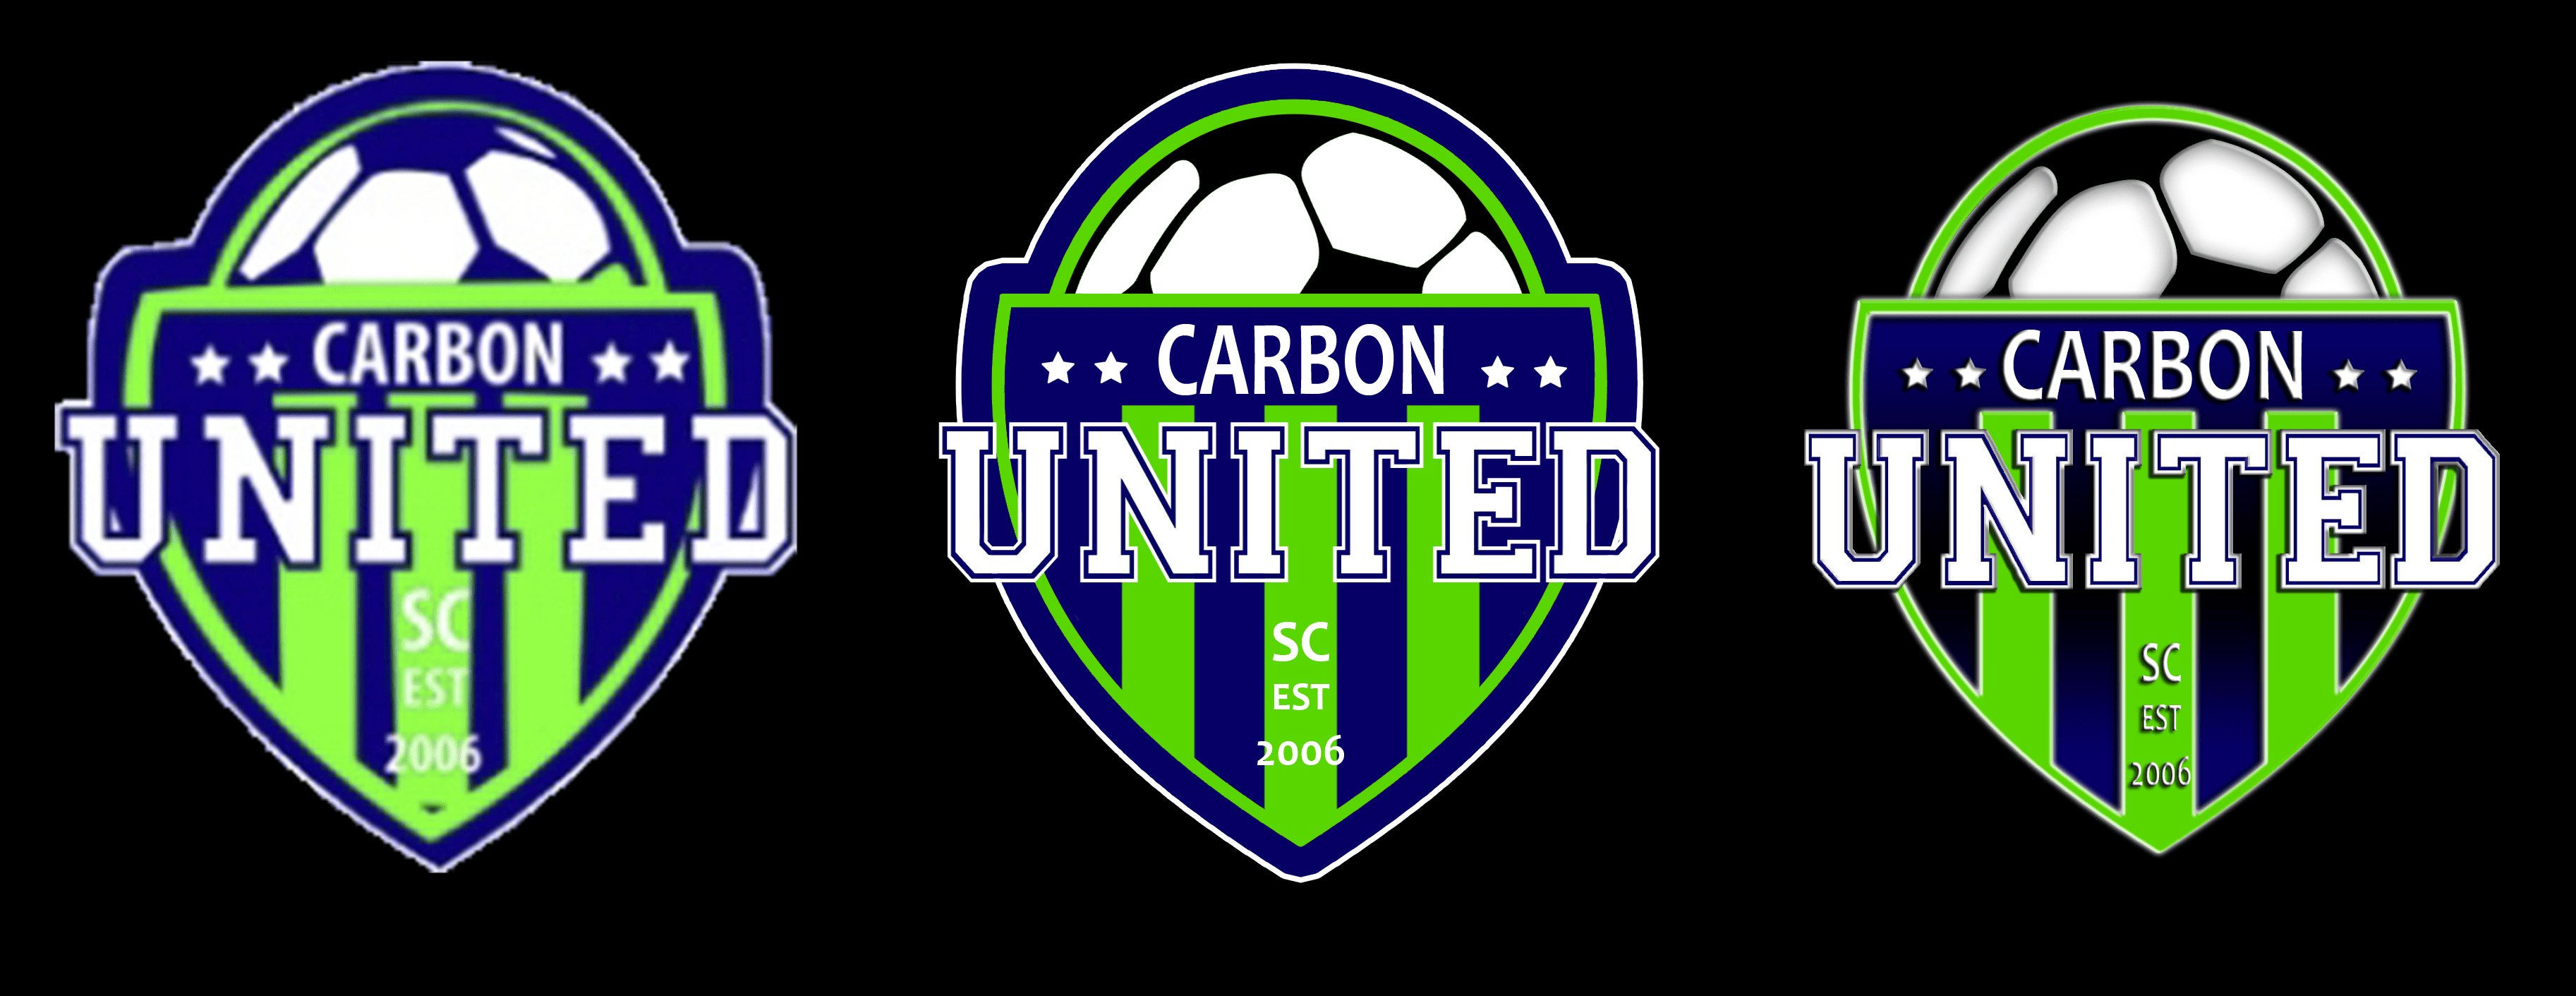 Cleaned up Carbon United Logo.